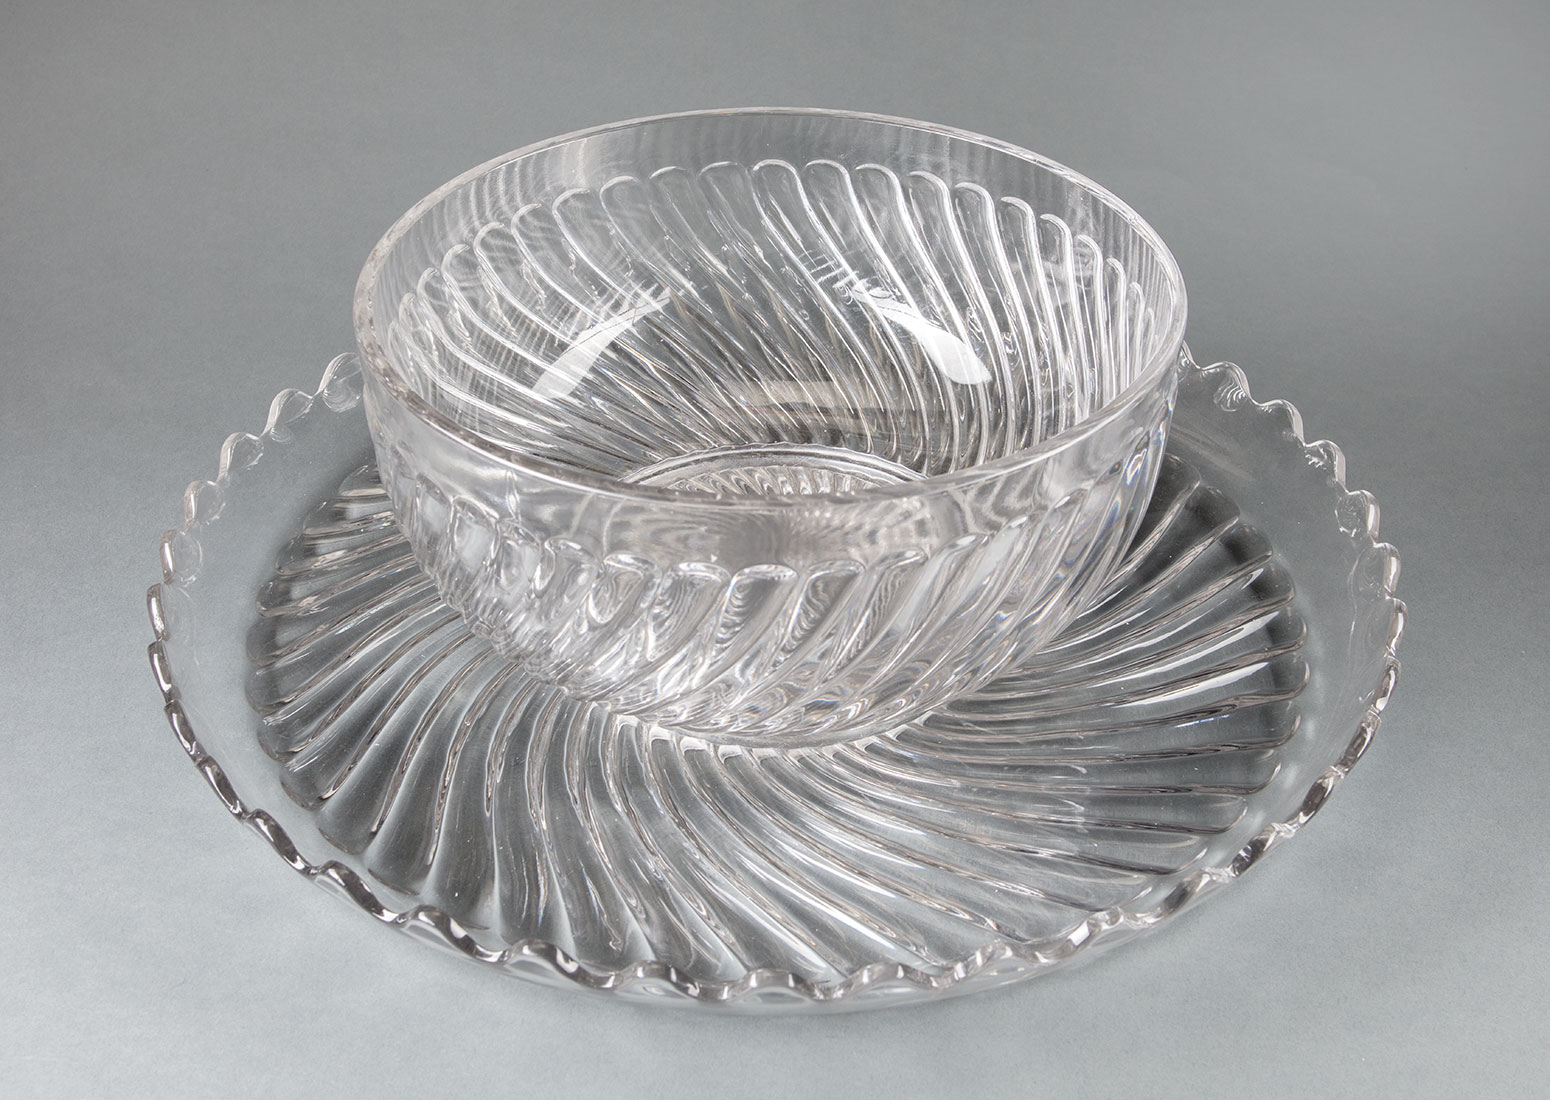 Lot 918 - Antique Baccarat Swirl Motif Molded Crystal Punch Bowl and Undertray , early 20th c., marked, h. 5